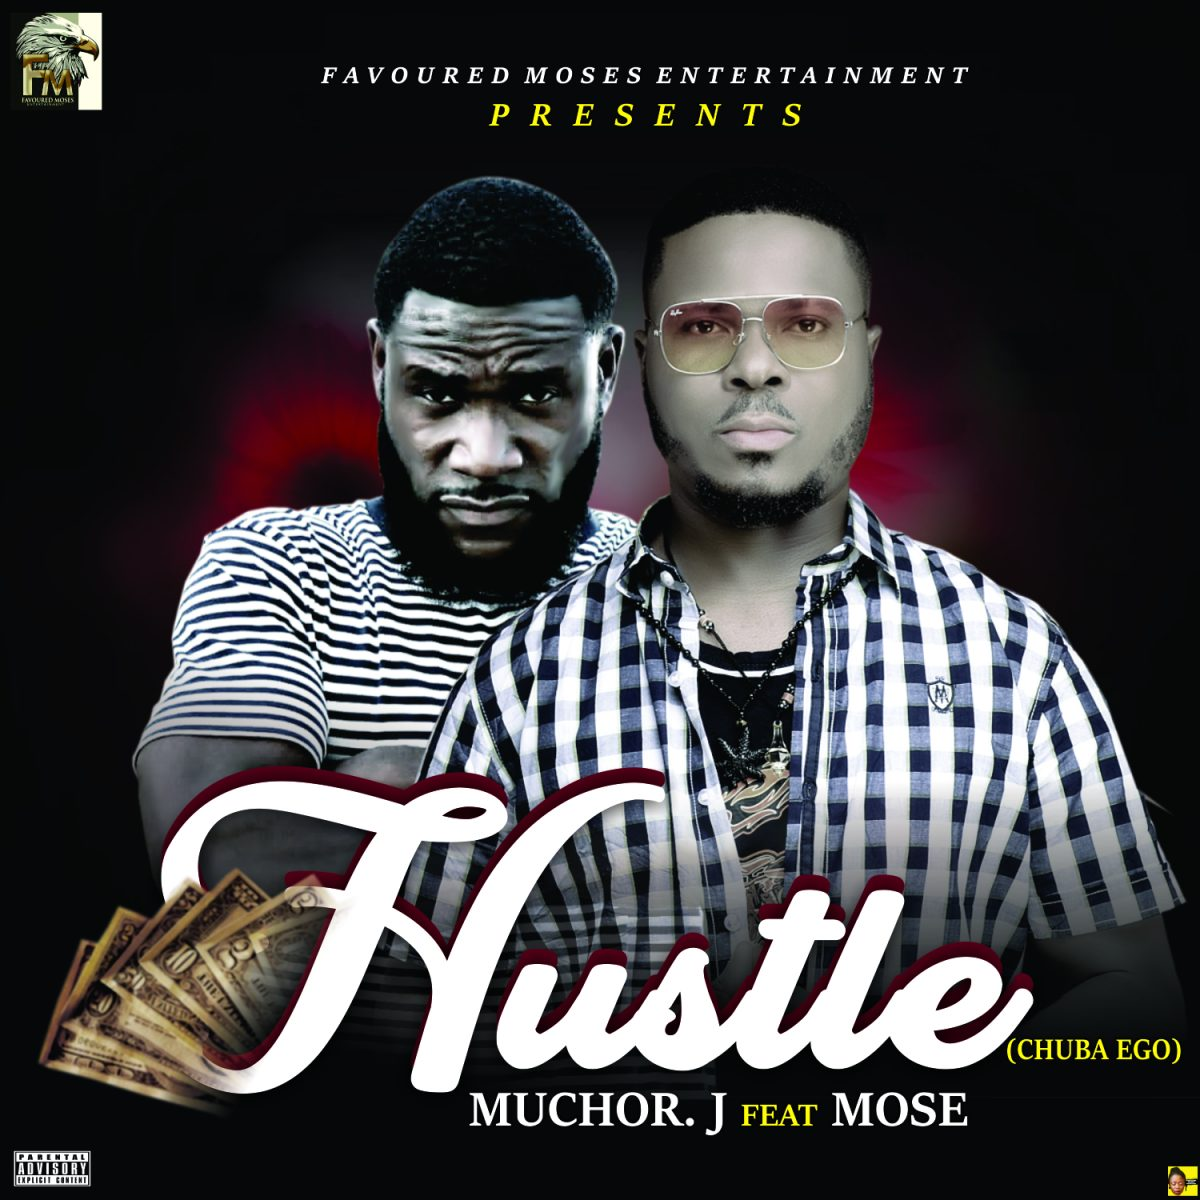 Muchor J ft Mose - Hustle (Chuba Ego)